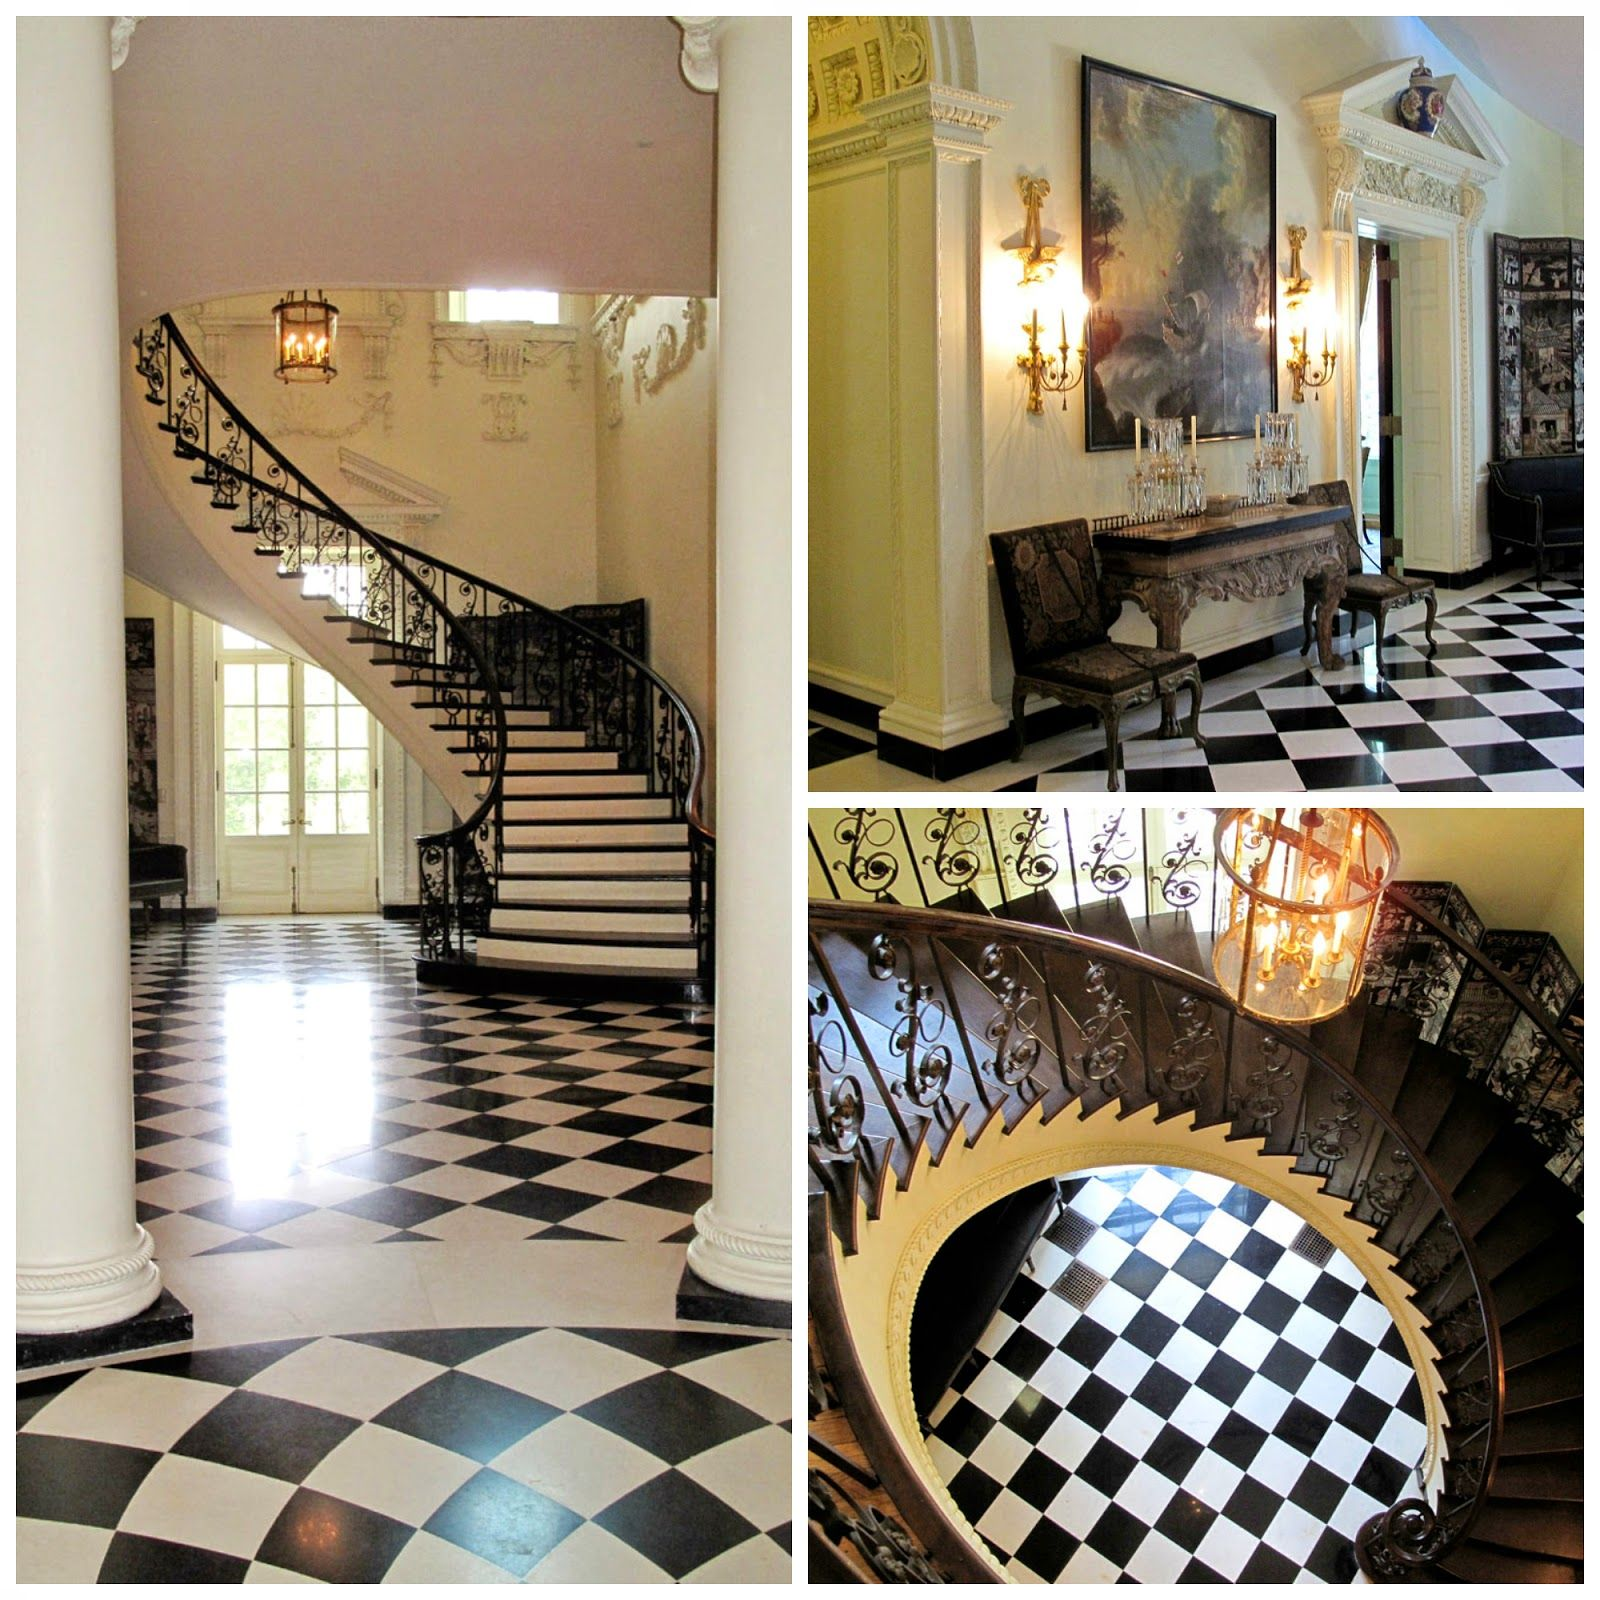 philip trammell shutze Swan house - Google Search